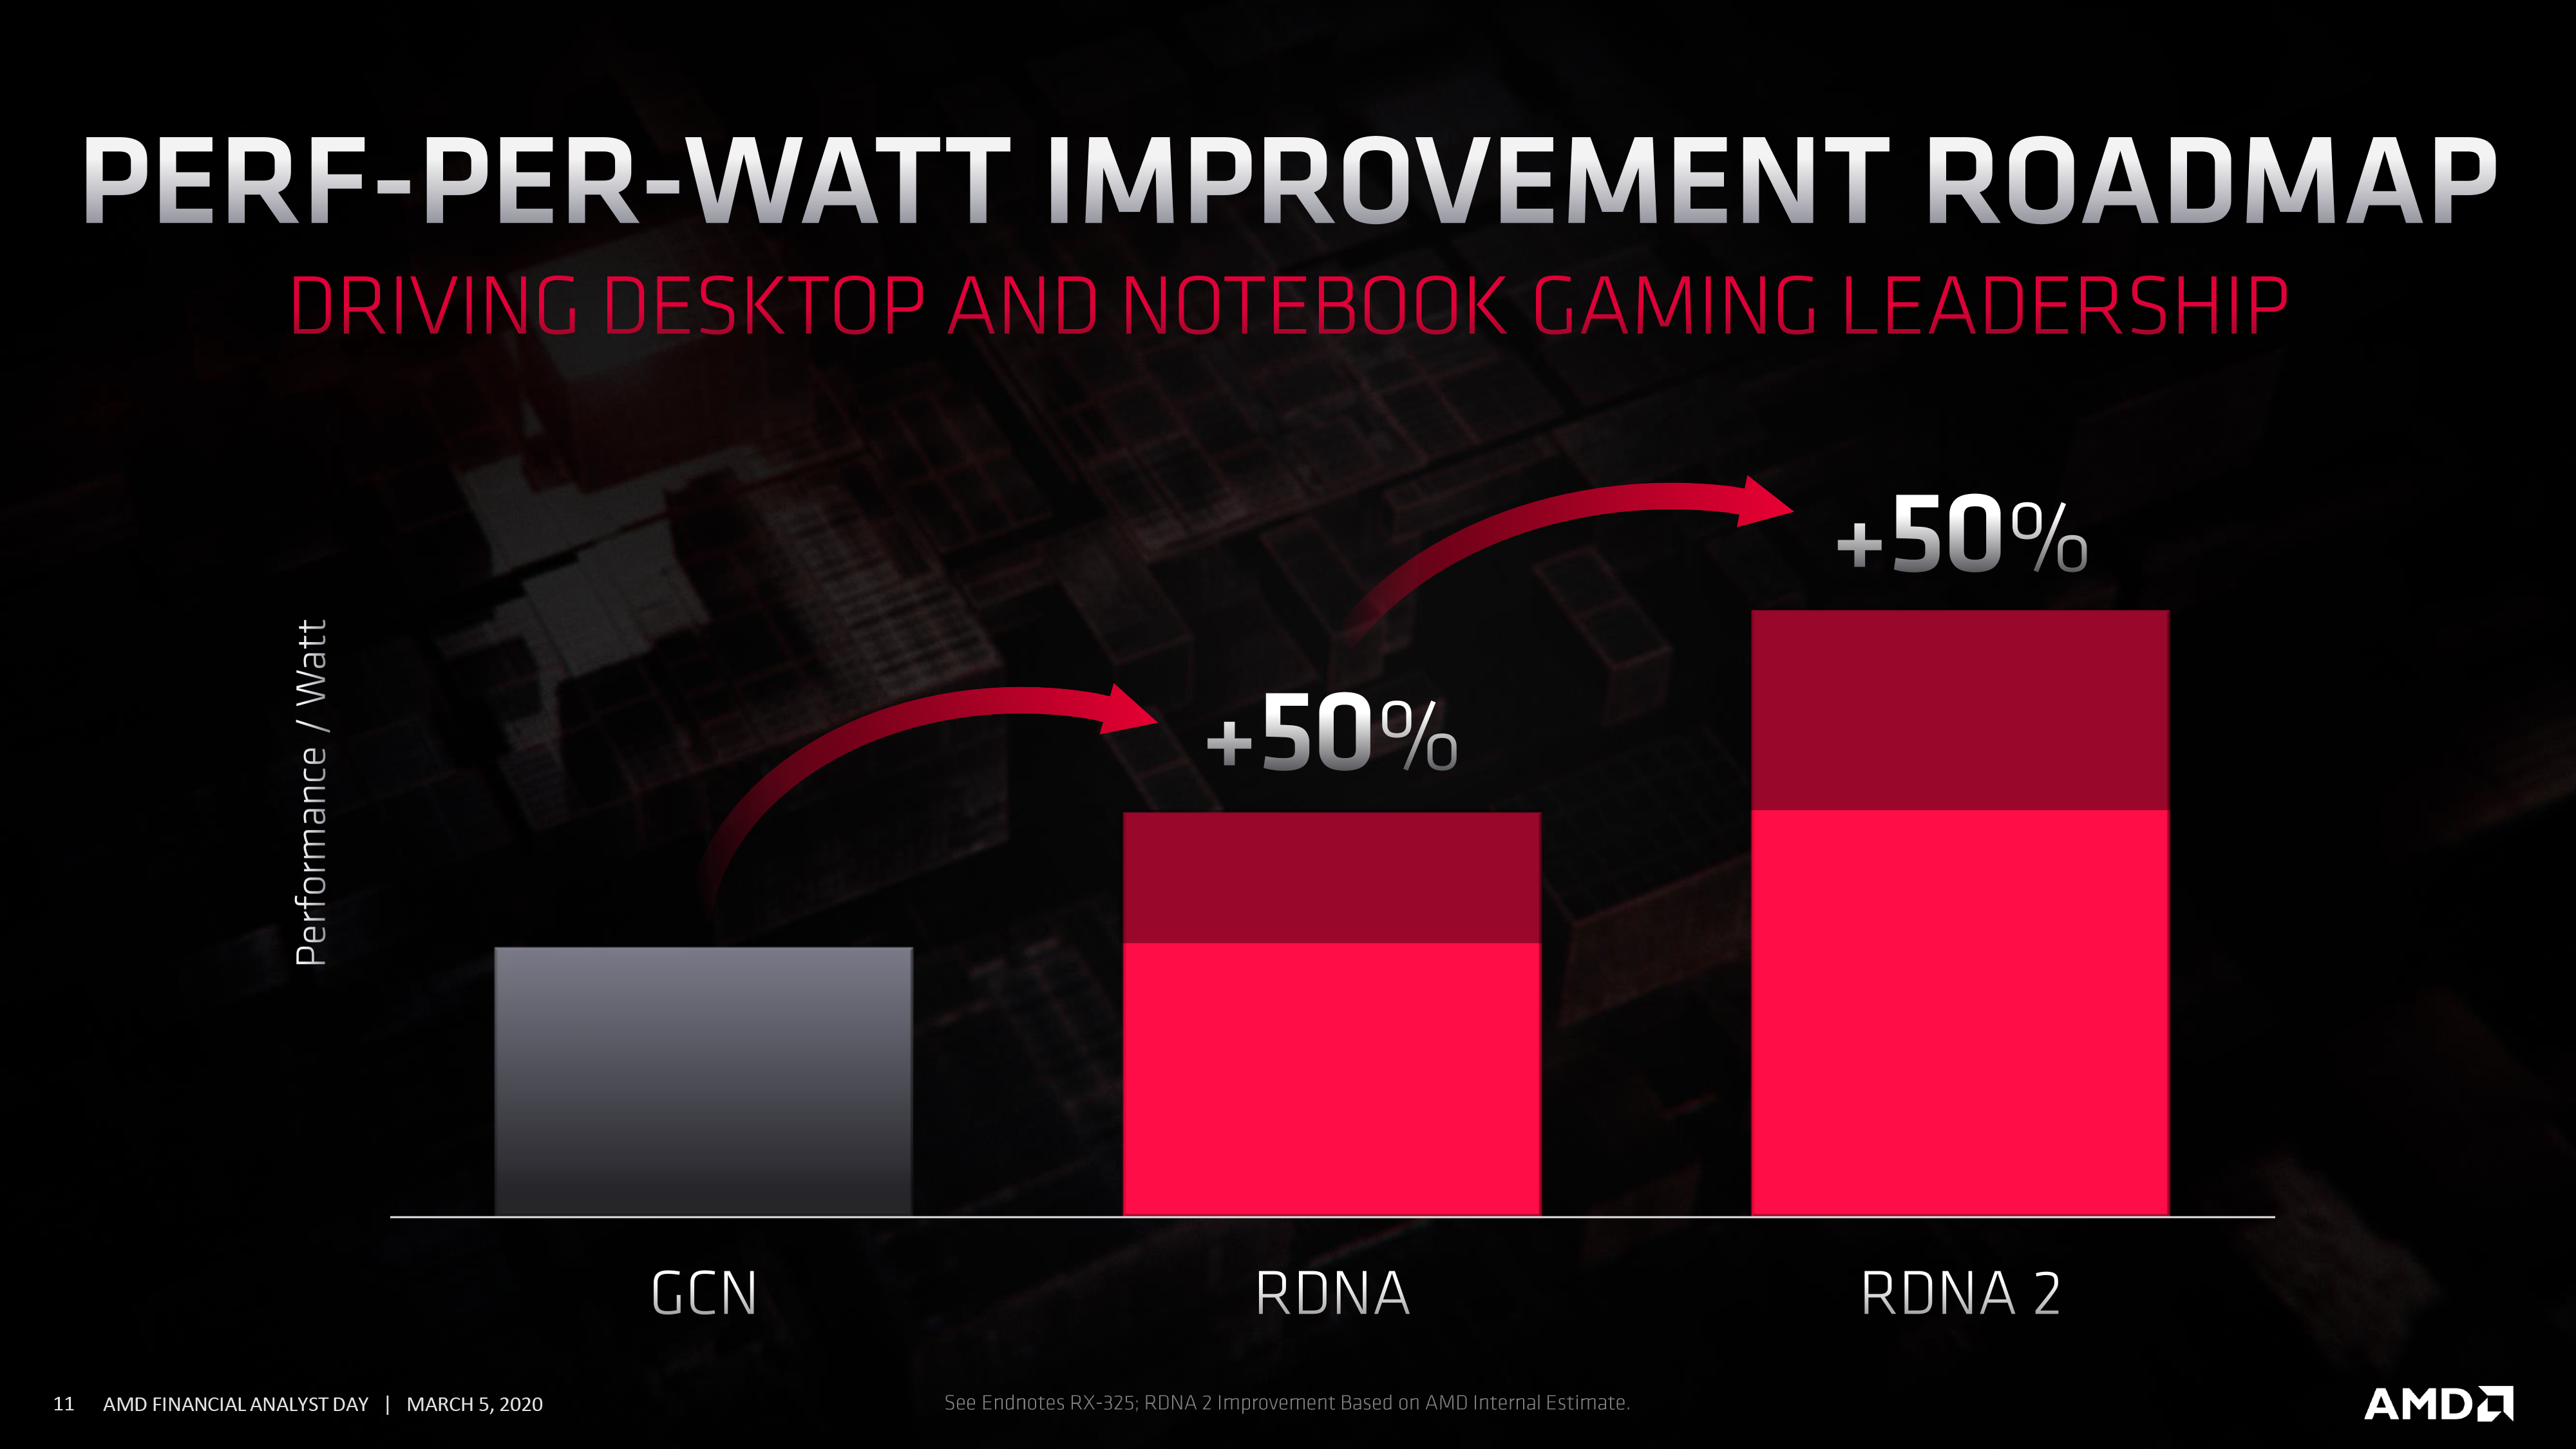 Amd S Rdna 2 Gets A Codename Navi 2x Comes This Year With 50 Improved Perf Per Watt